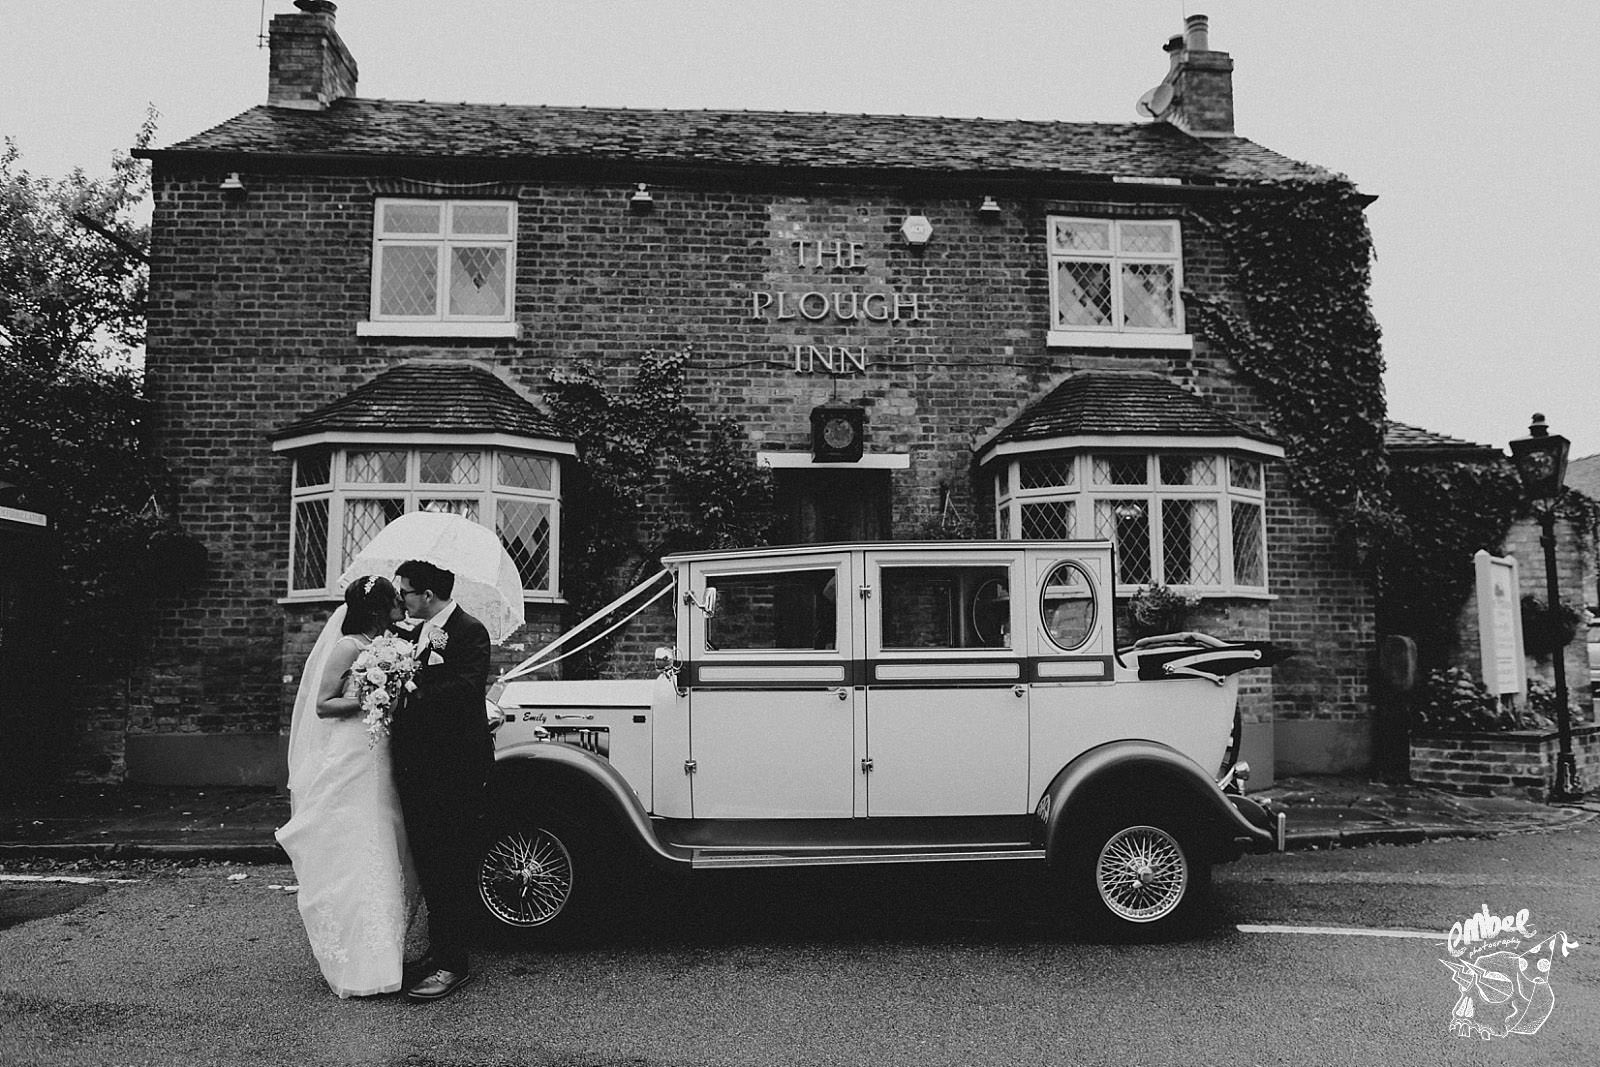 bride and groom with wedding car infant of the plough inn, eaton in cheshire